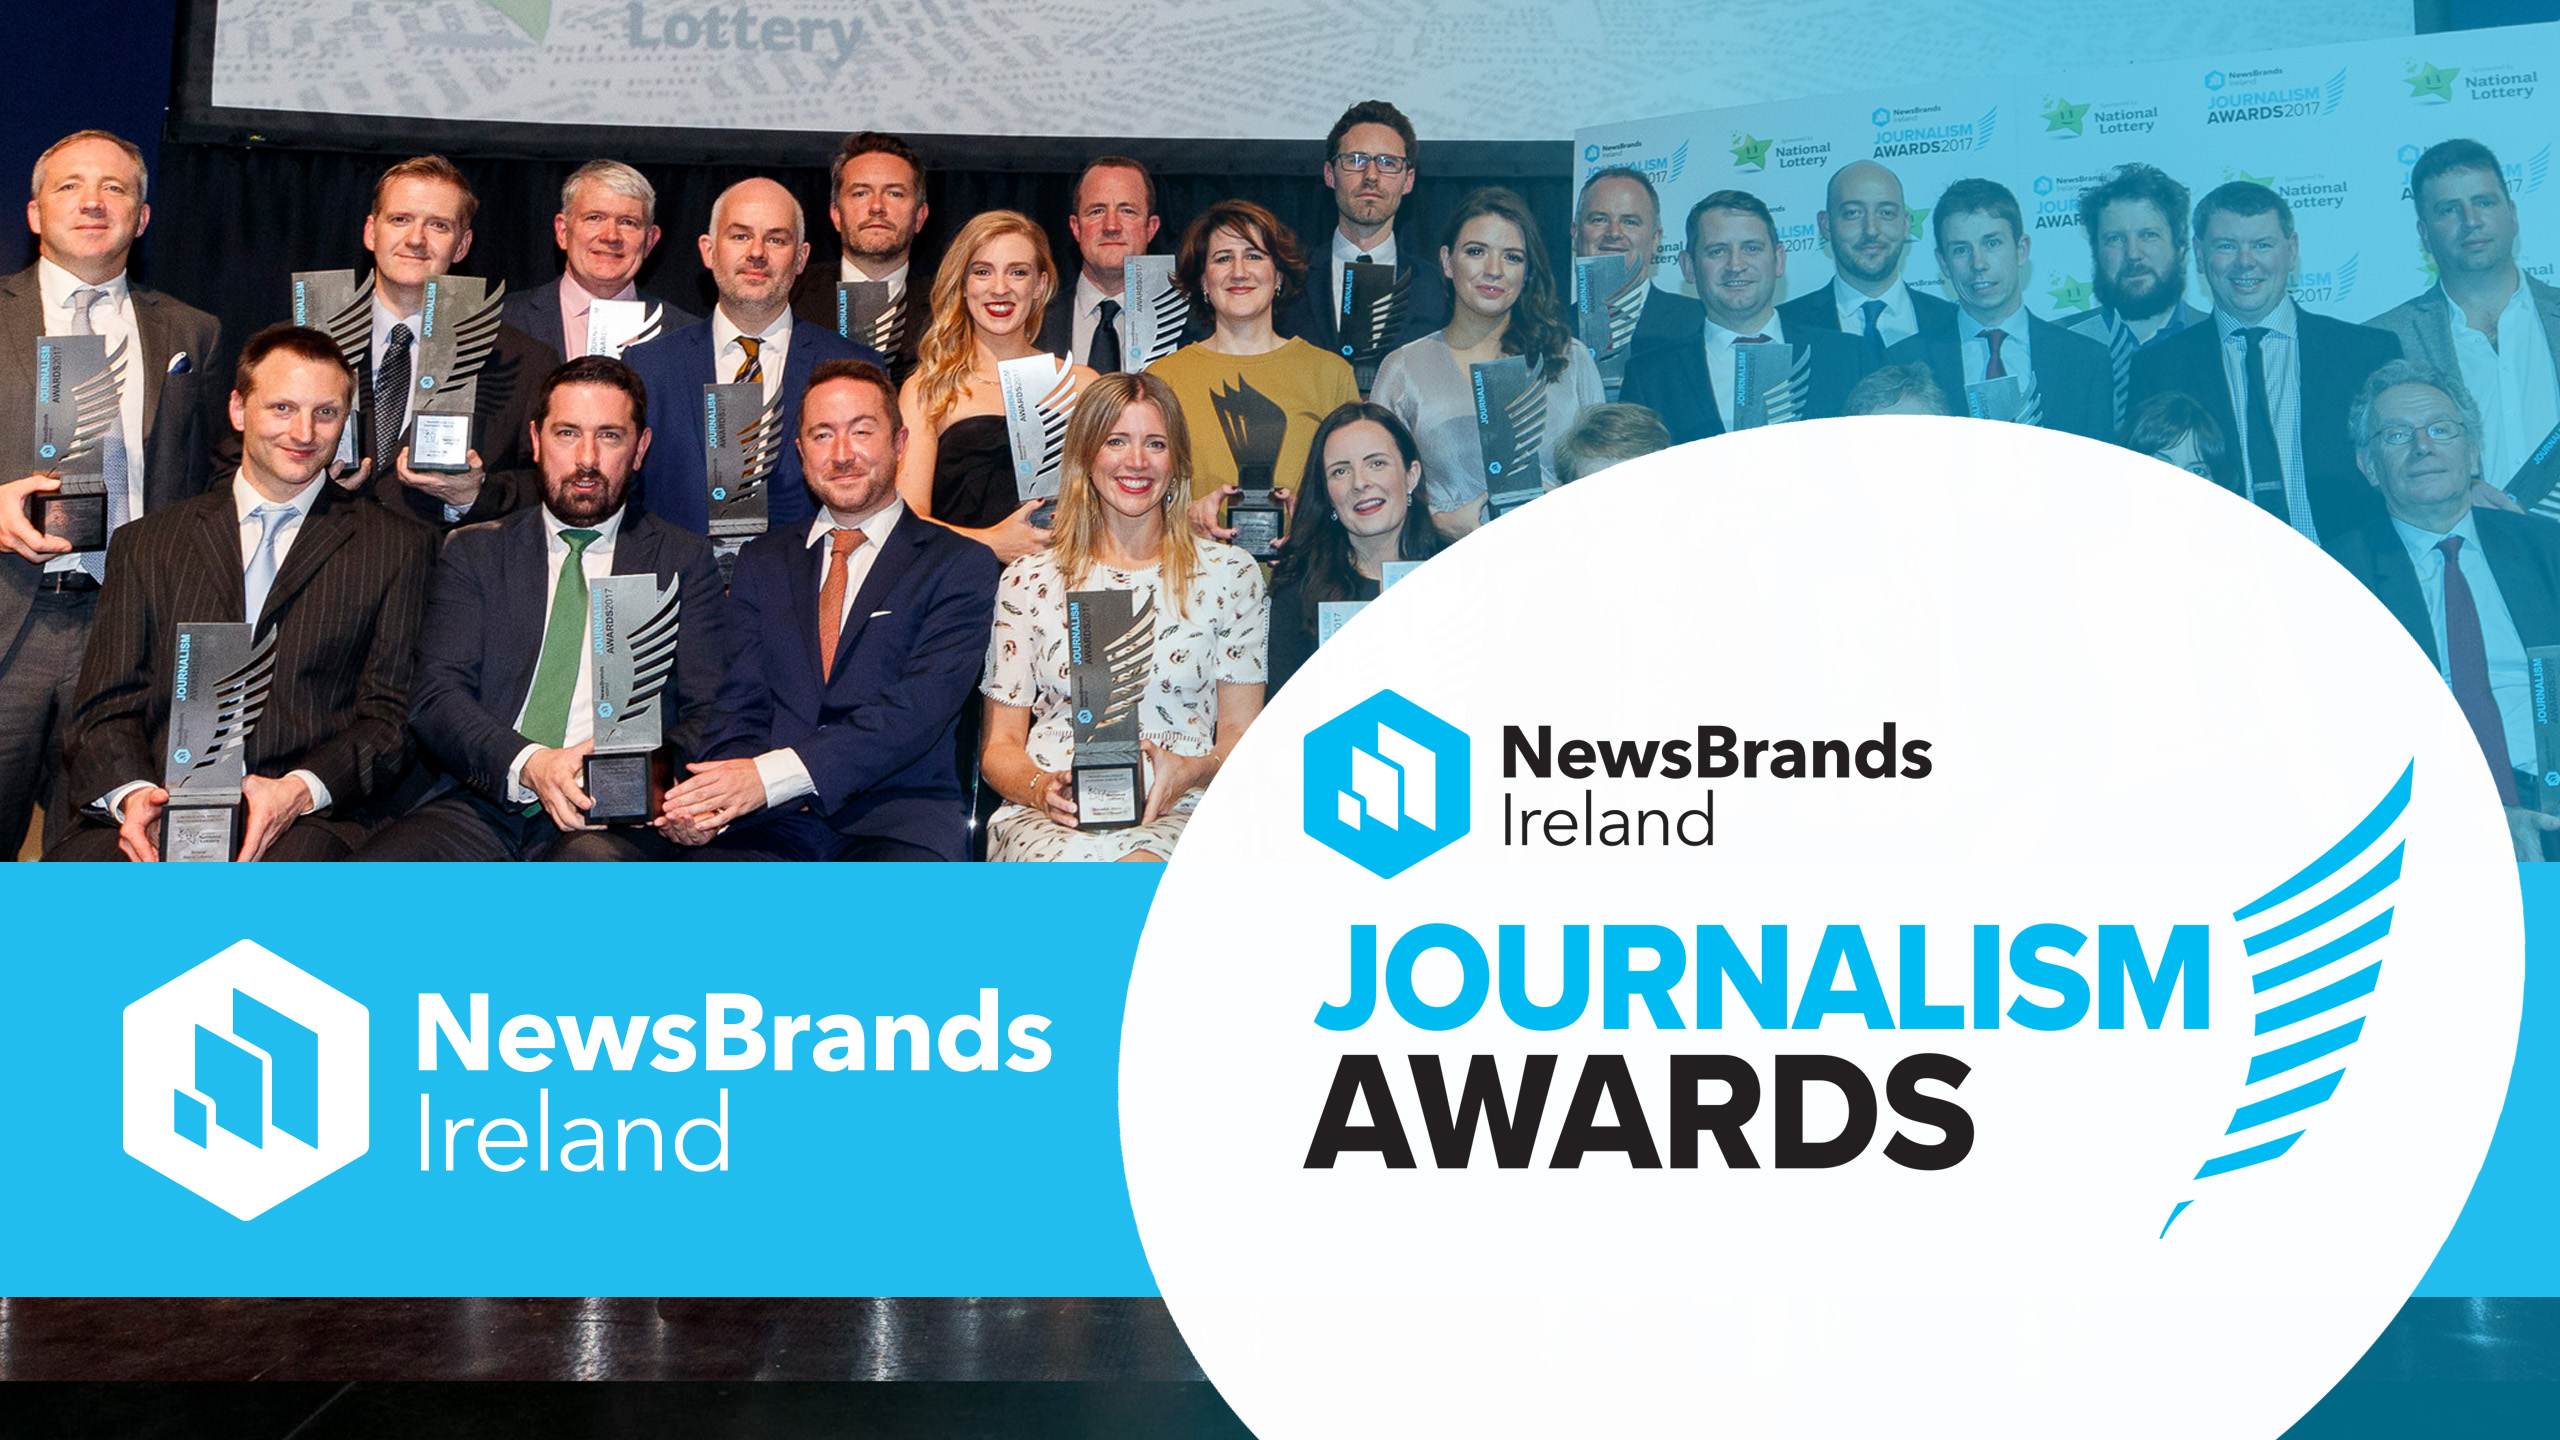 journalism awards ireland